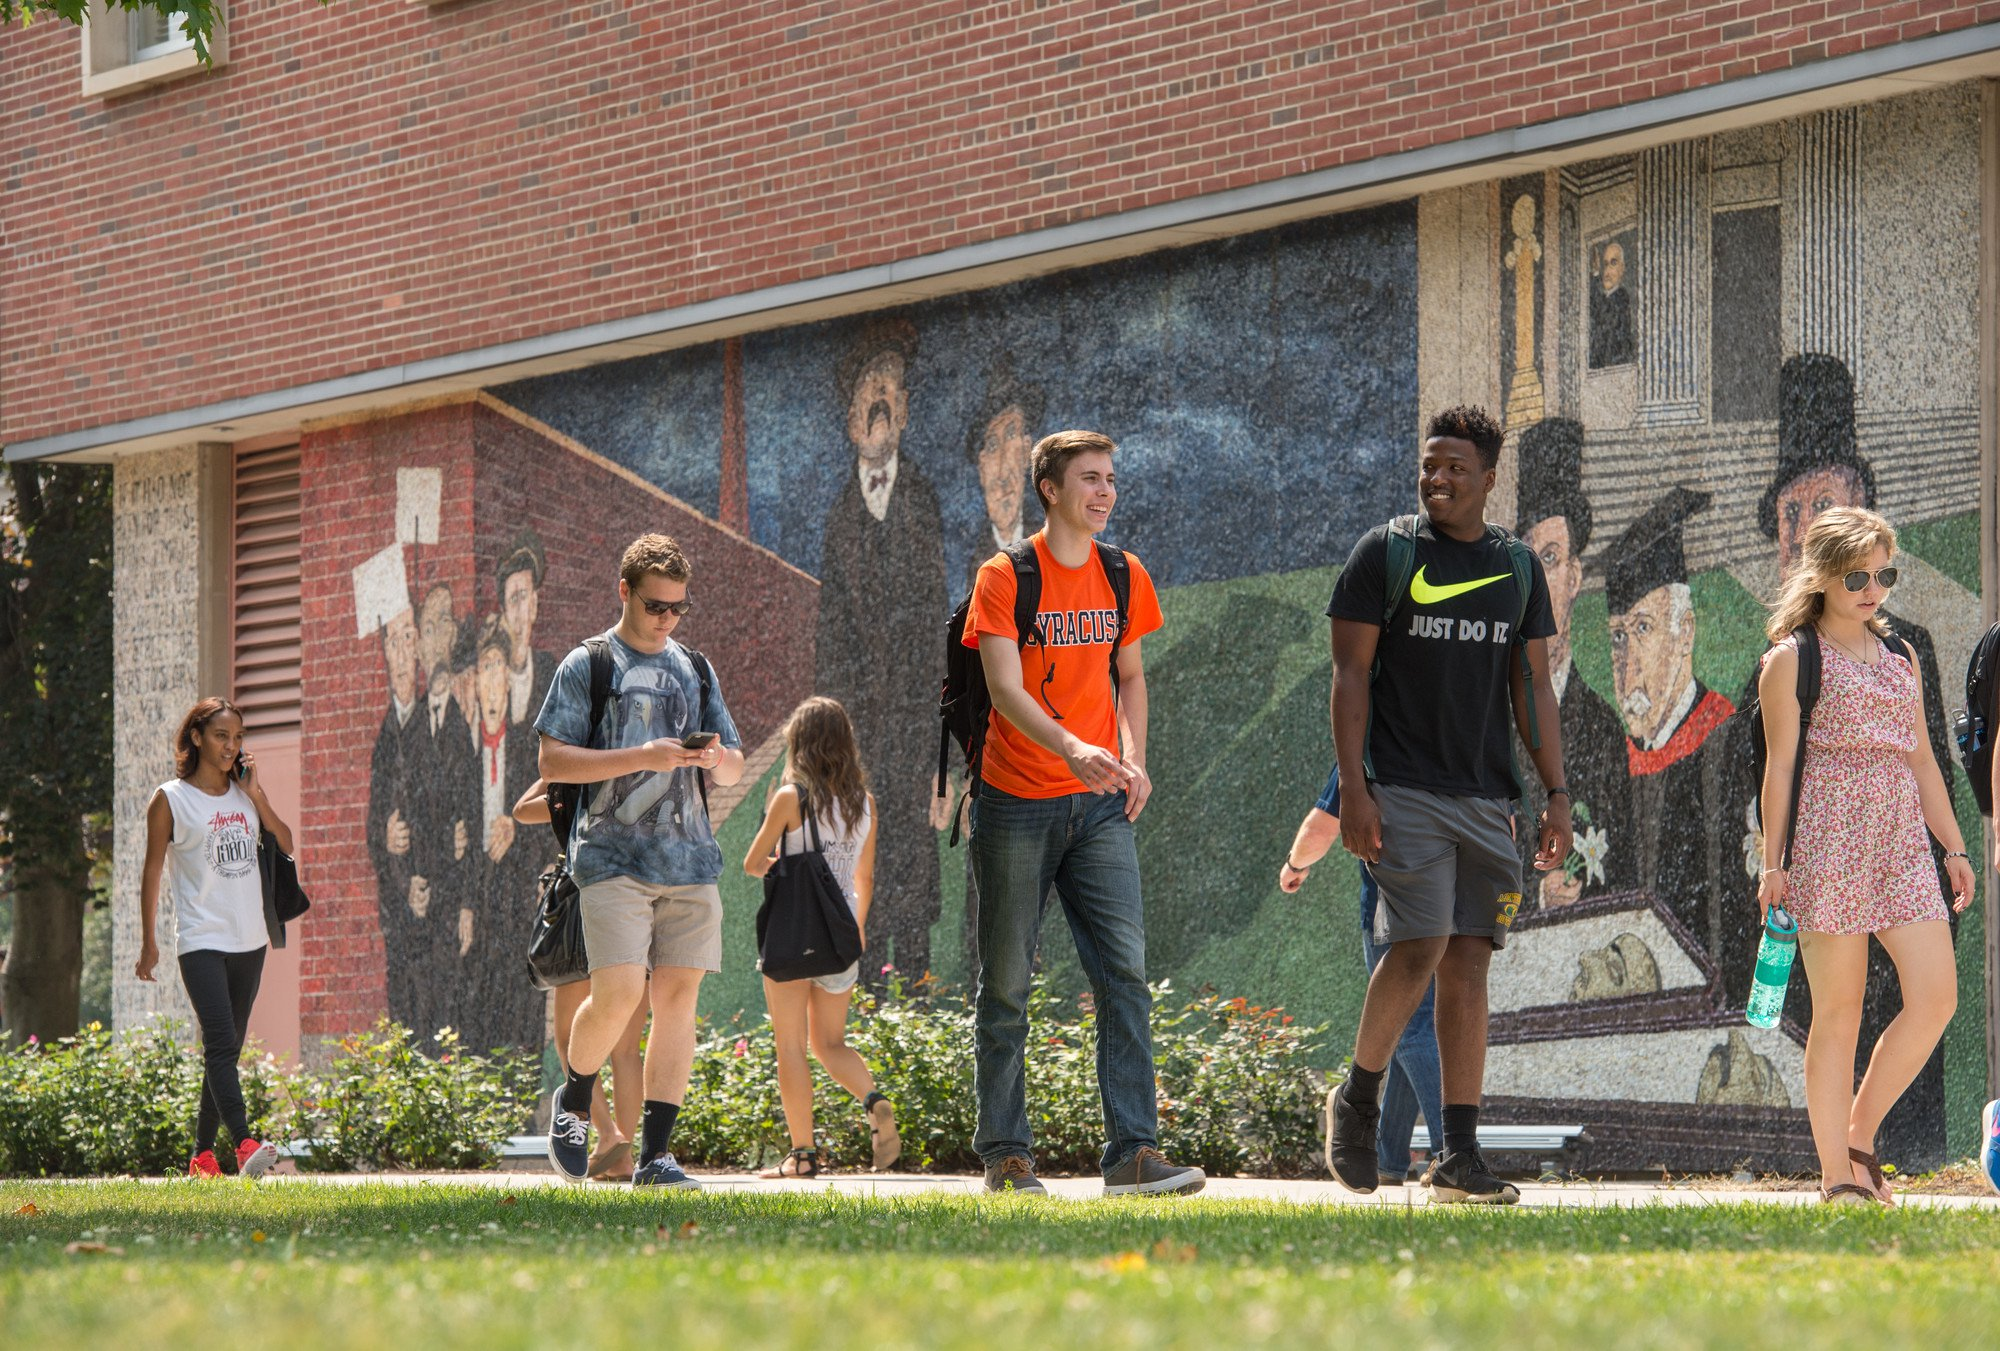 Students walk past a mural